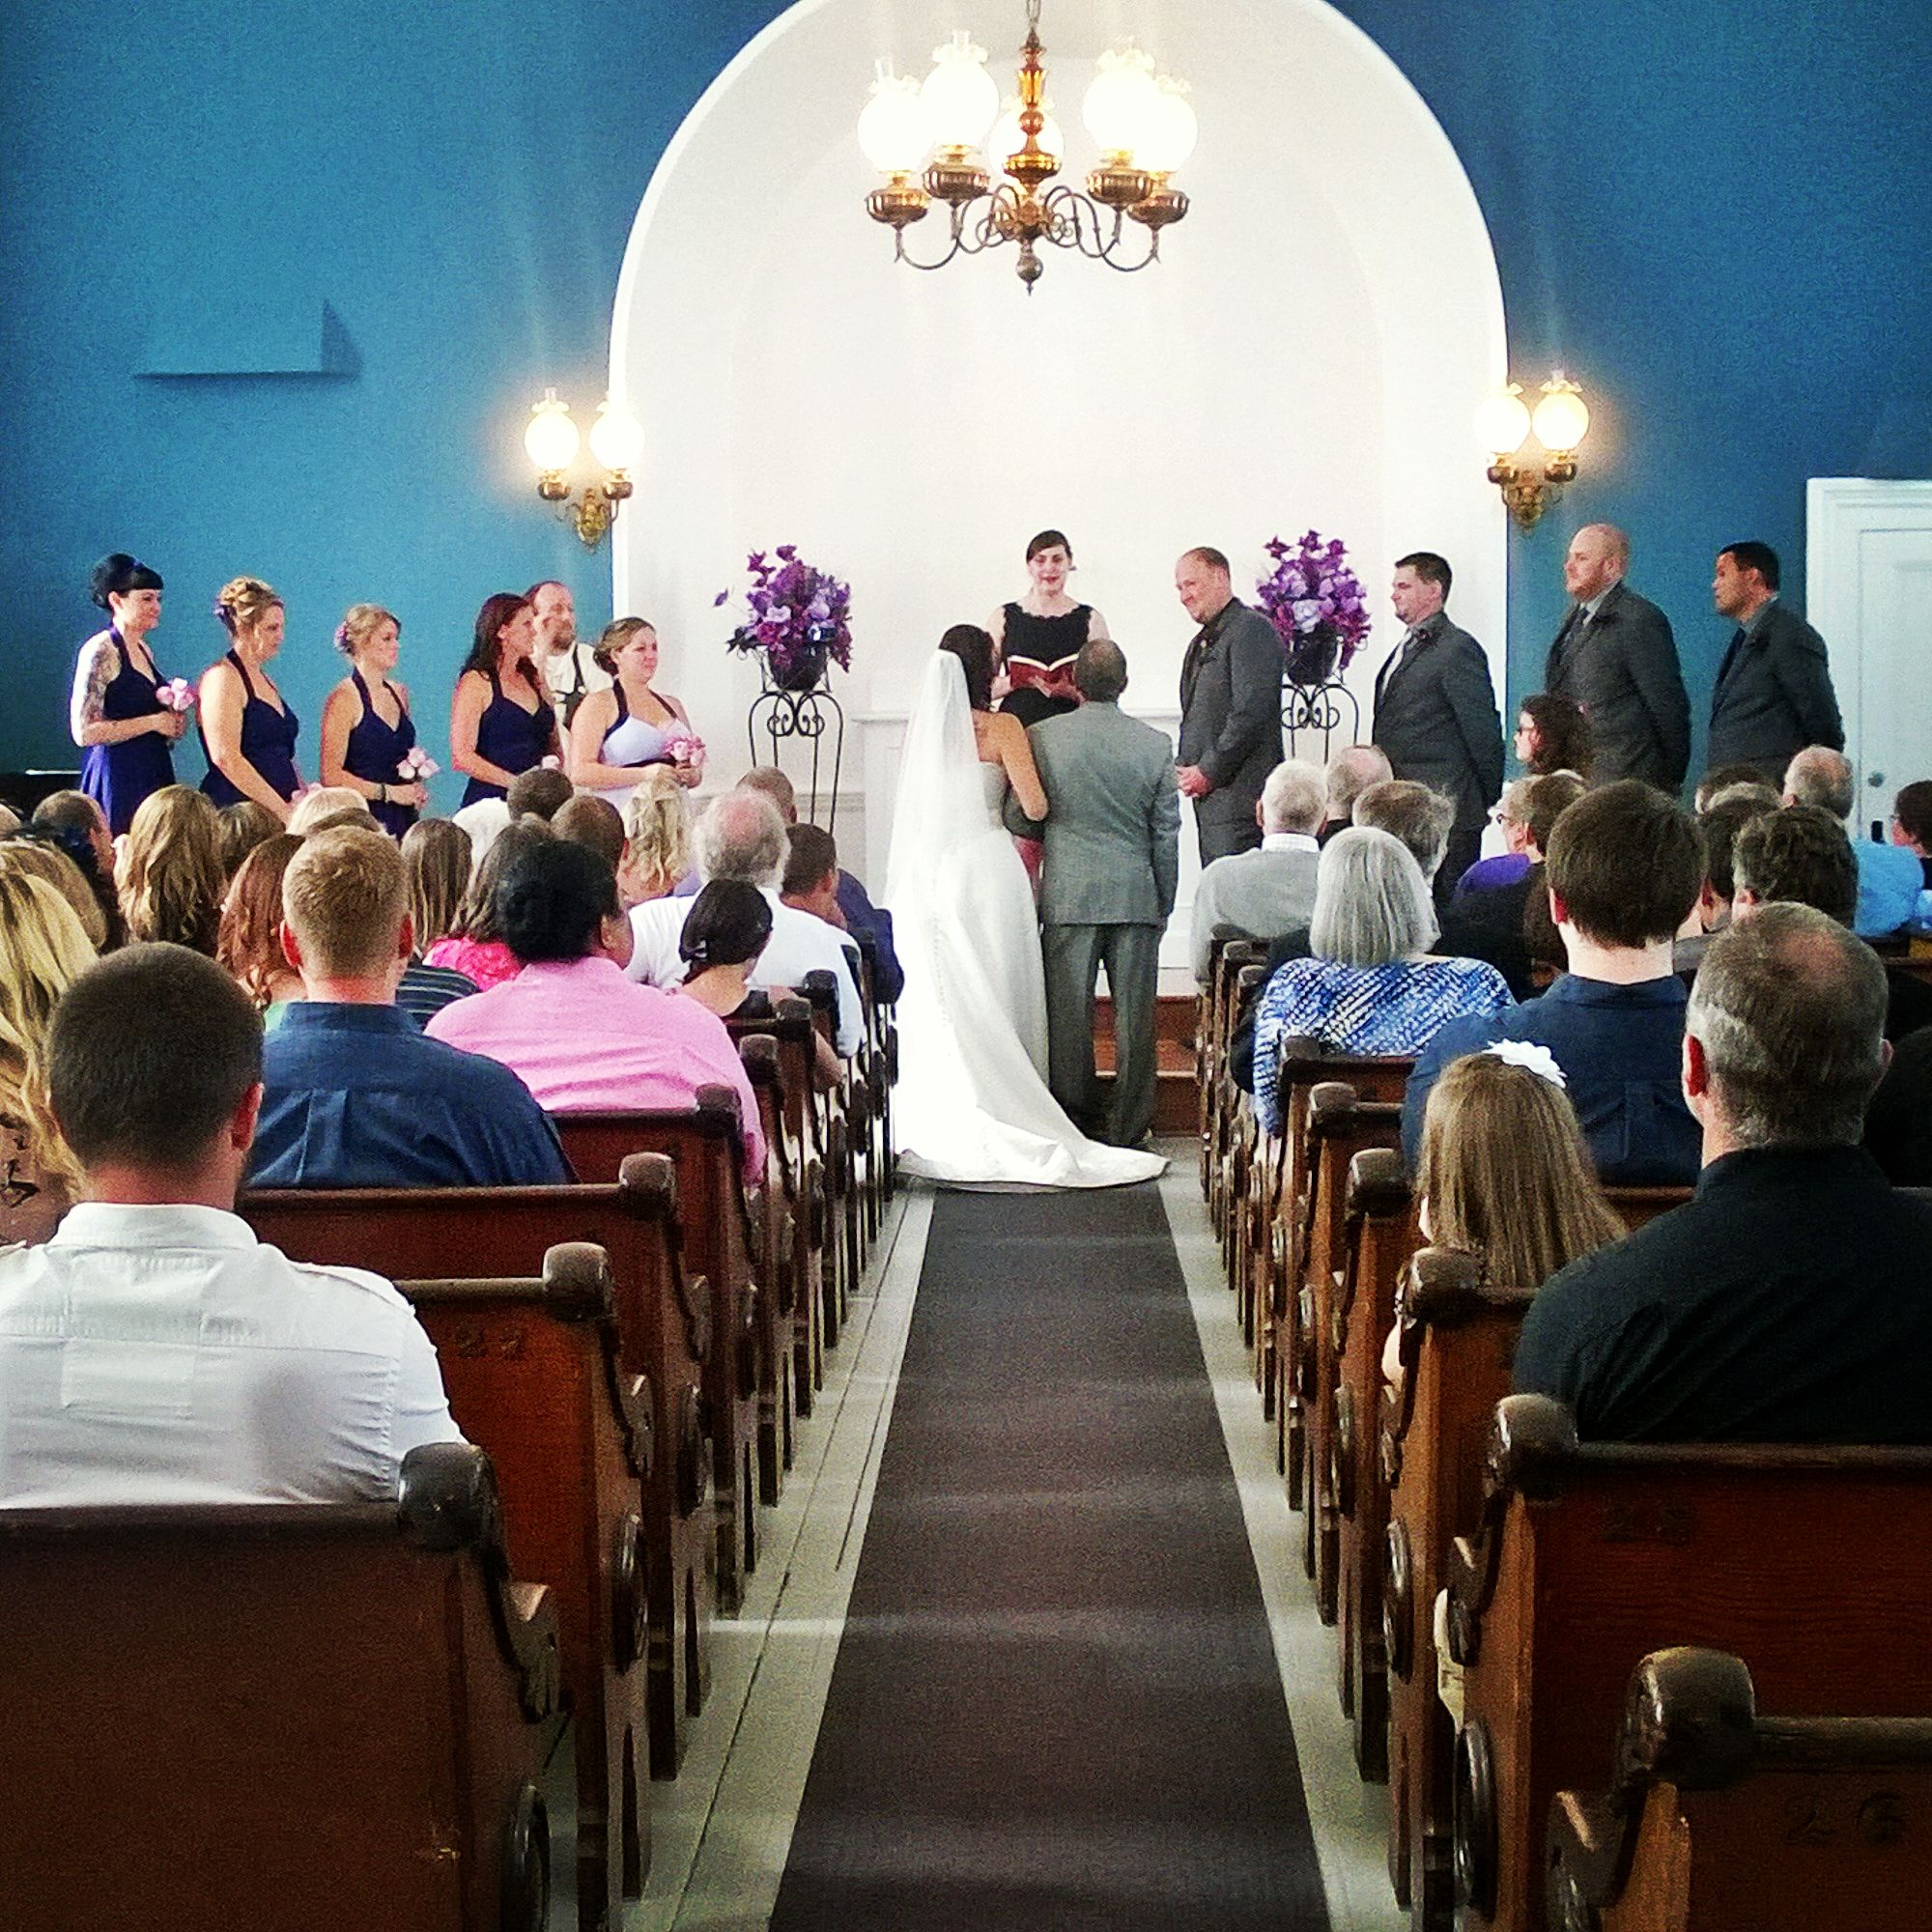 Congratulations to Mr. & Mrs. Hogue! The beautiful ...